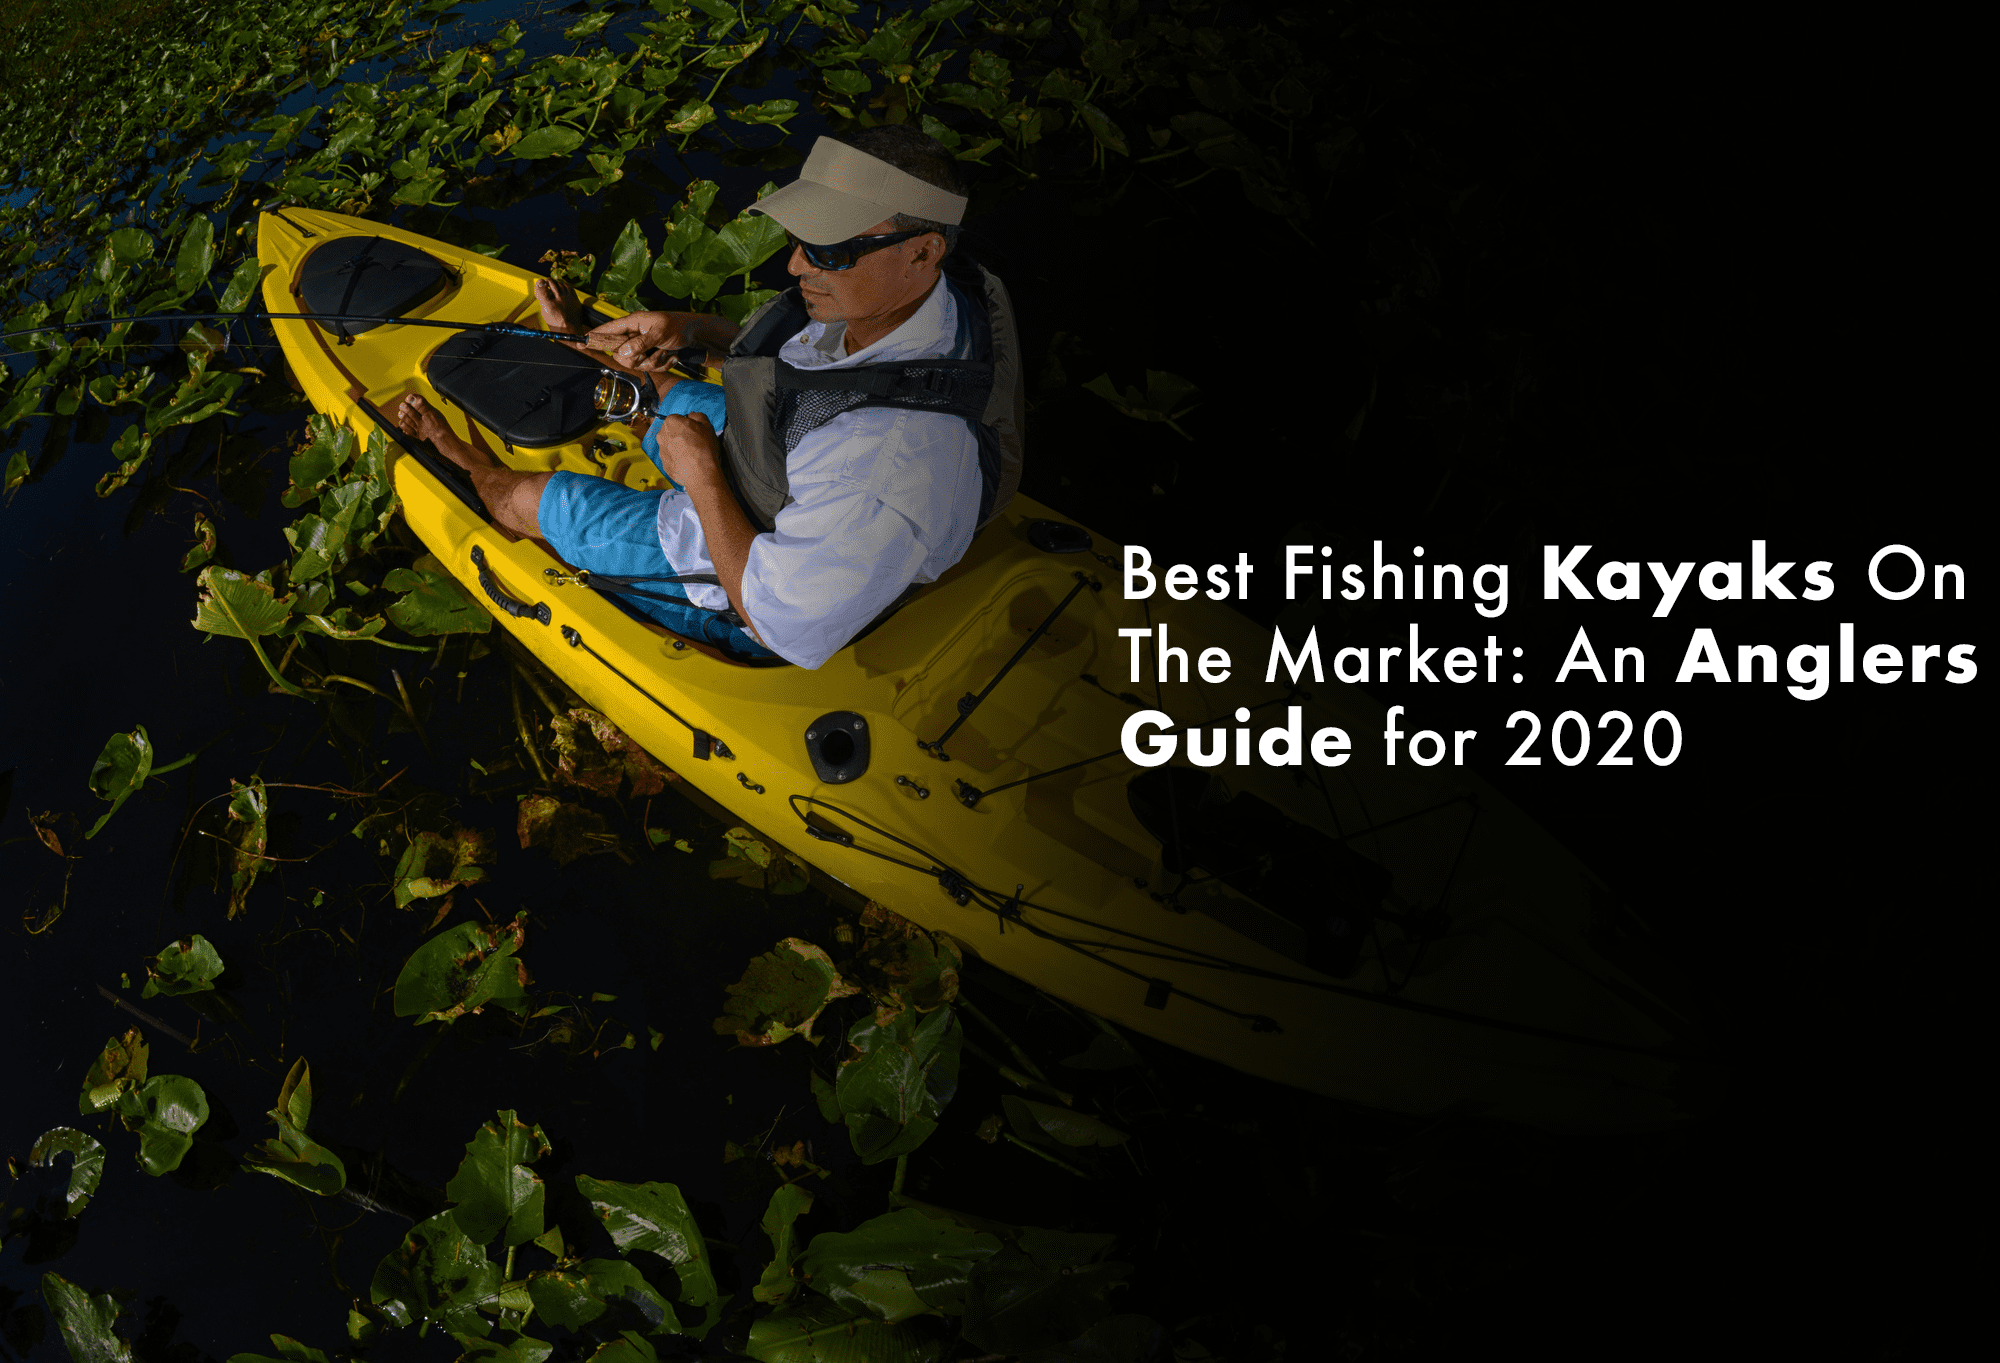 Best Fishing Kayaks On The Market: An Anglers Guide for 2020